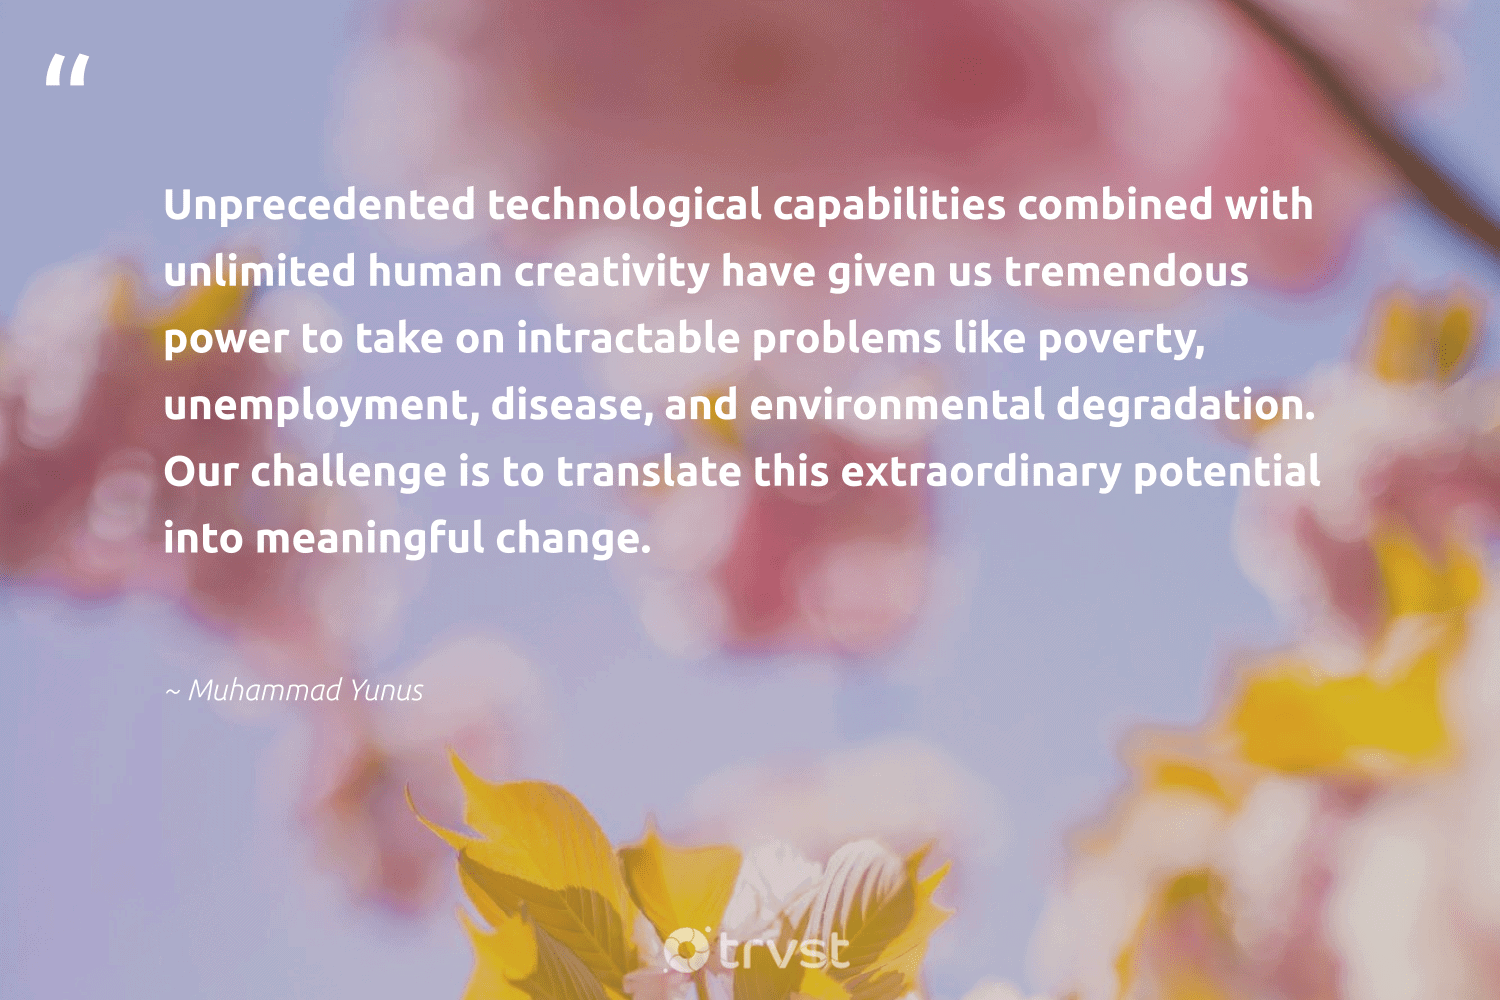 """""""Unprecedented technological capabilities combined with unlimited human creativity have given us tremendous power to take on intractable problems like poverty, unemployment, disease, and environmental degradation. Our challenge is to translate this extraordinary potential into meaningful change.""""  - Muhammad Yunus #trvst #quotes #environmental #poverty #creativity #endpoverty #eco #weareallone #socialchange #giveback #equalopportunity #planetearthfirst"""